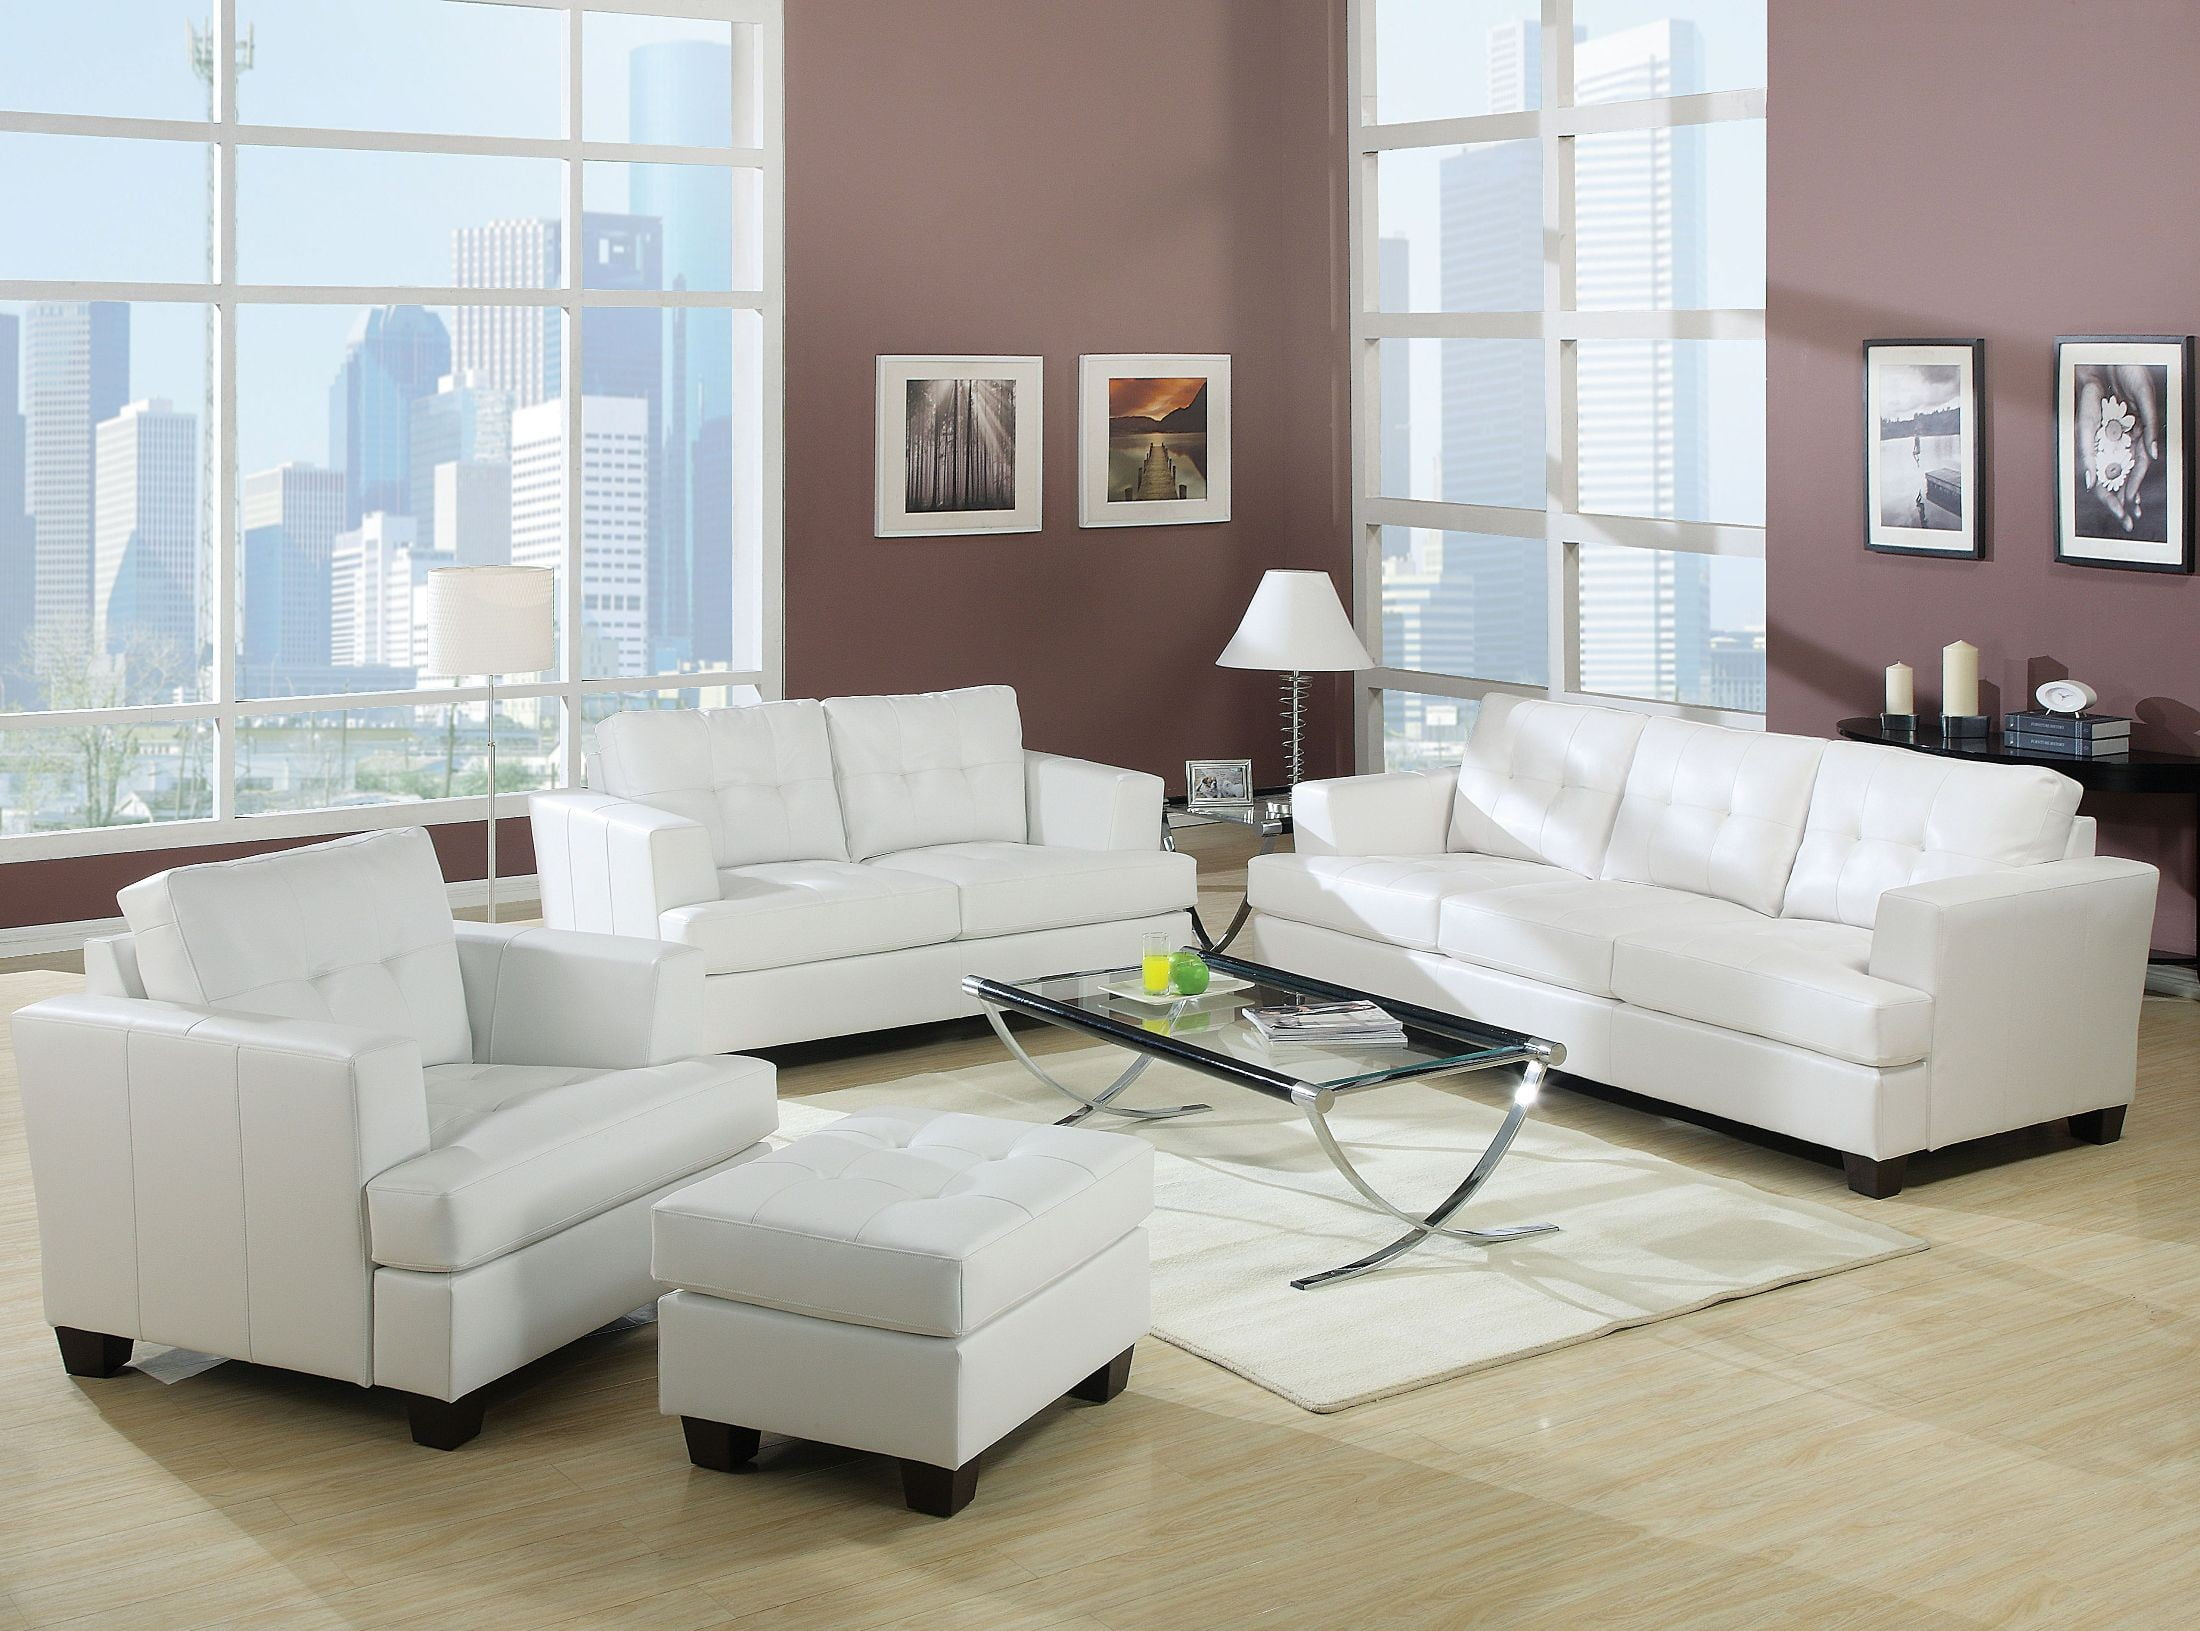 Platinum White Bonded Leather Living Room Set From Acme